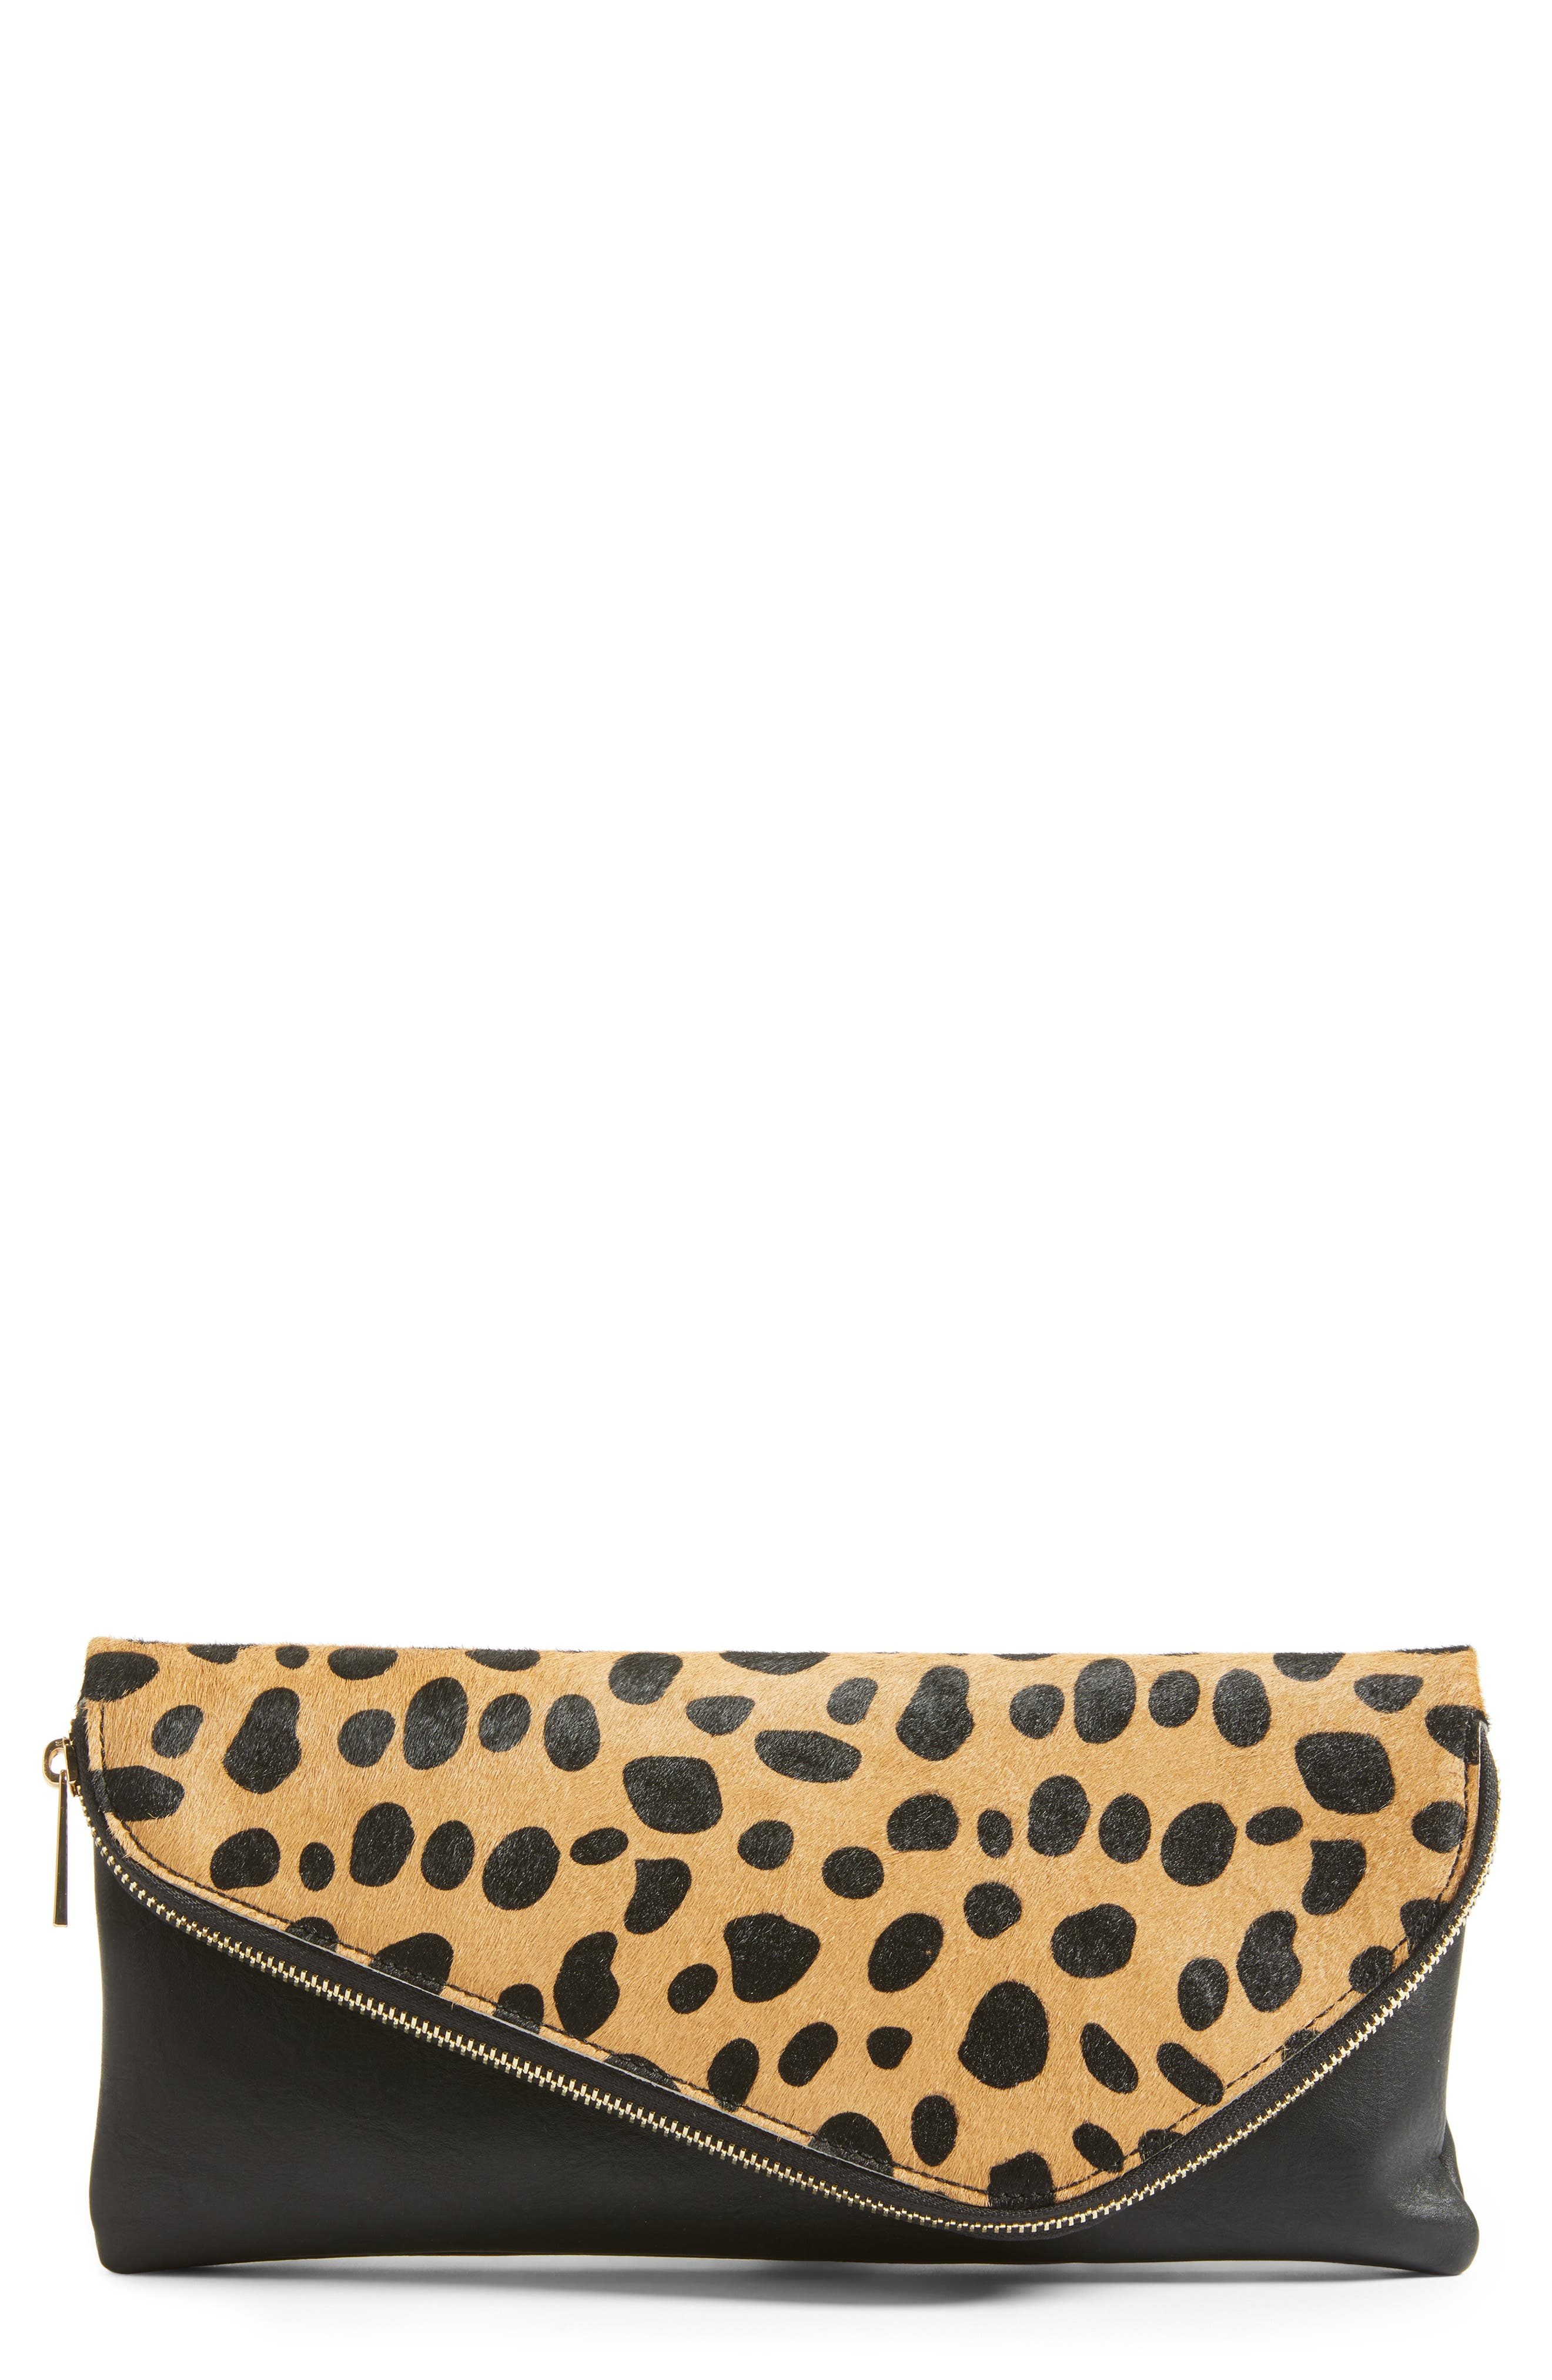 Main Image - Sole Society Tamika Genuine Calf Hair & Faux Leather Foldover Clutch